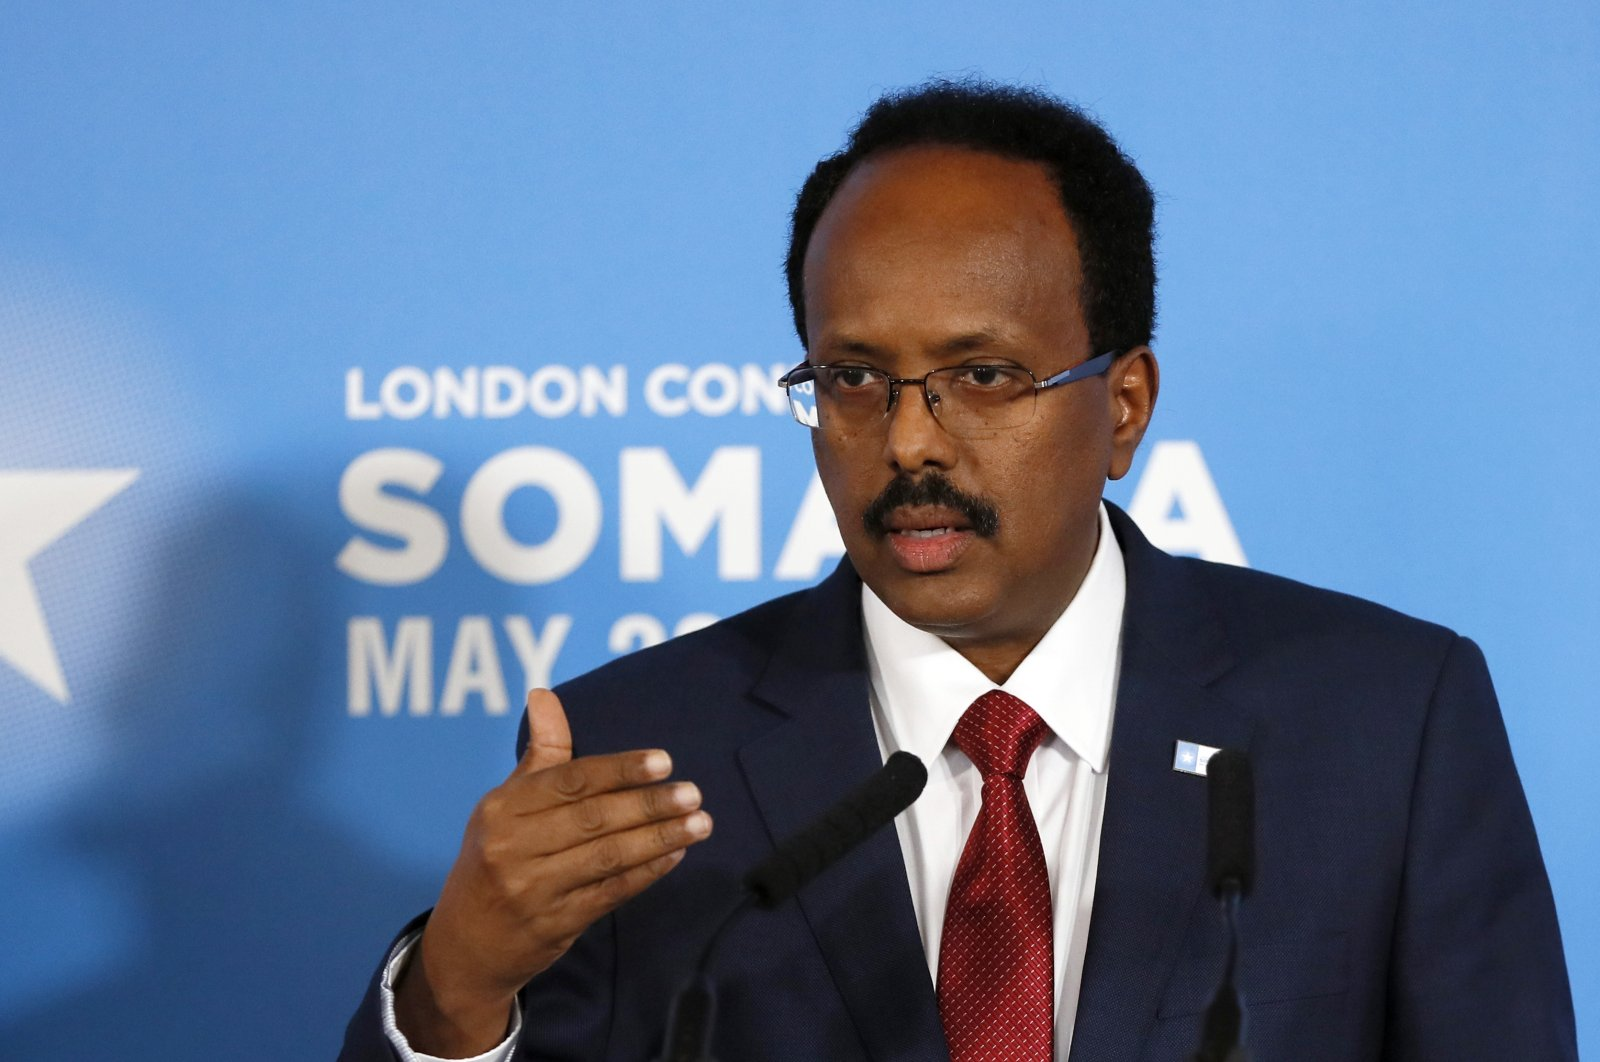 Somali President Mohamed Abdullahi Mohamed speaks during a press conference after the Somalia Conference in London, U.K., May 11, 2017. (AP Photo)